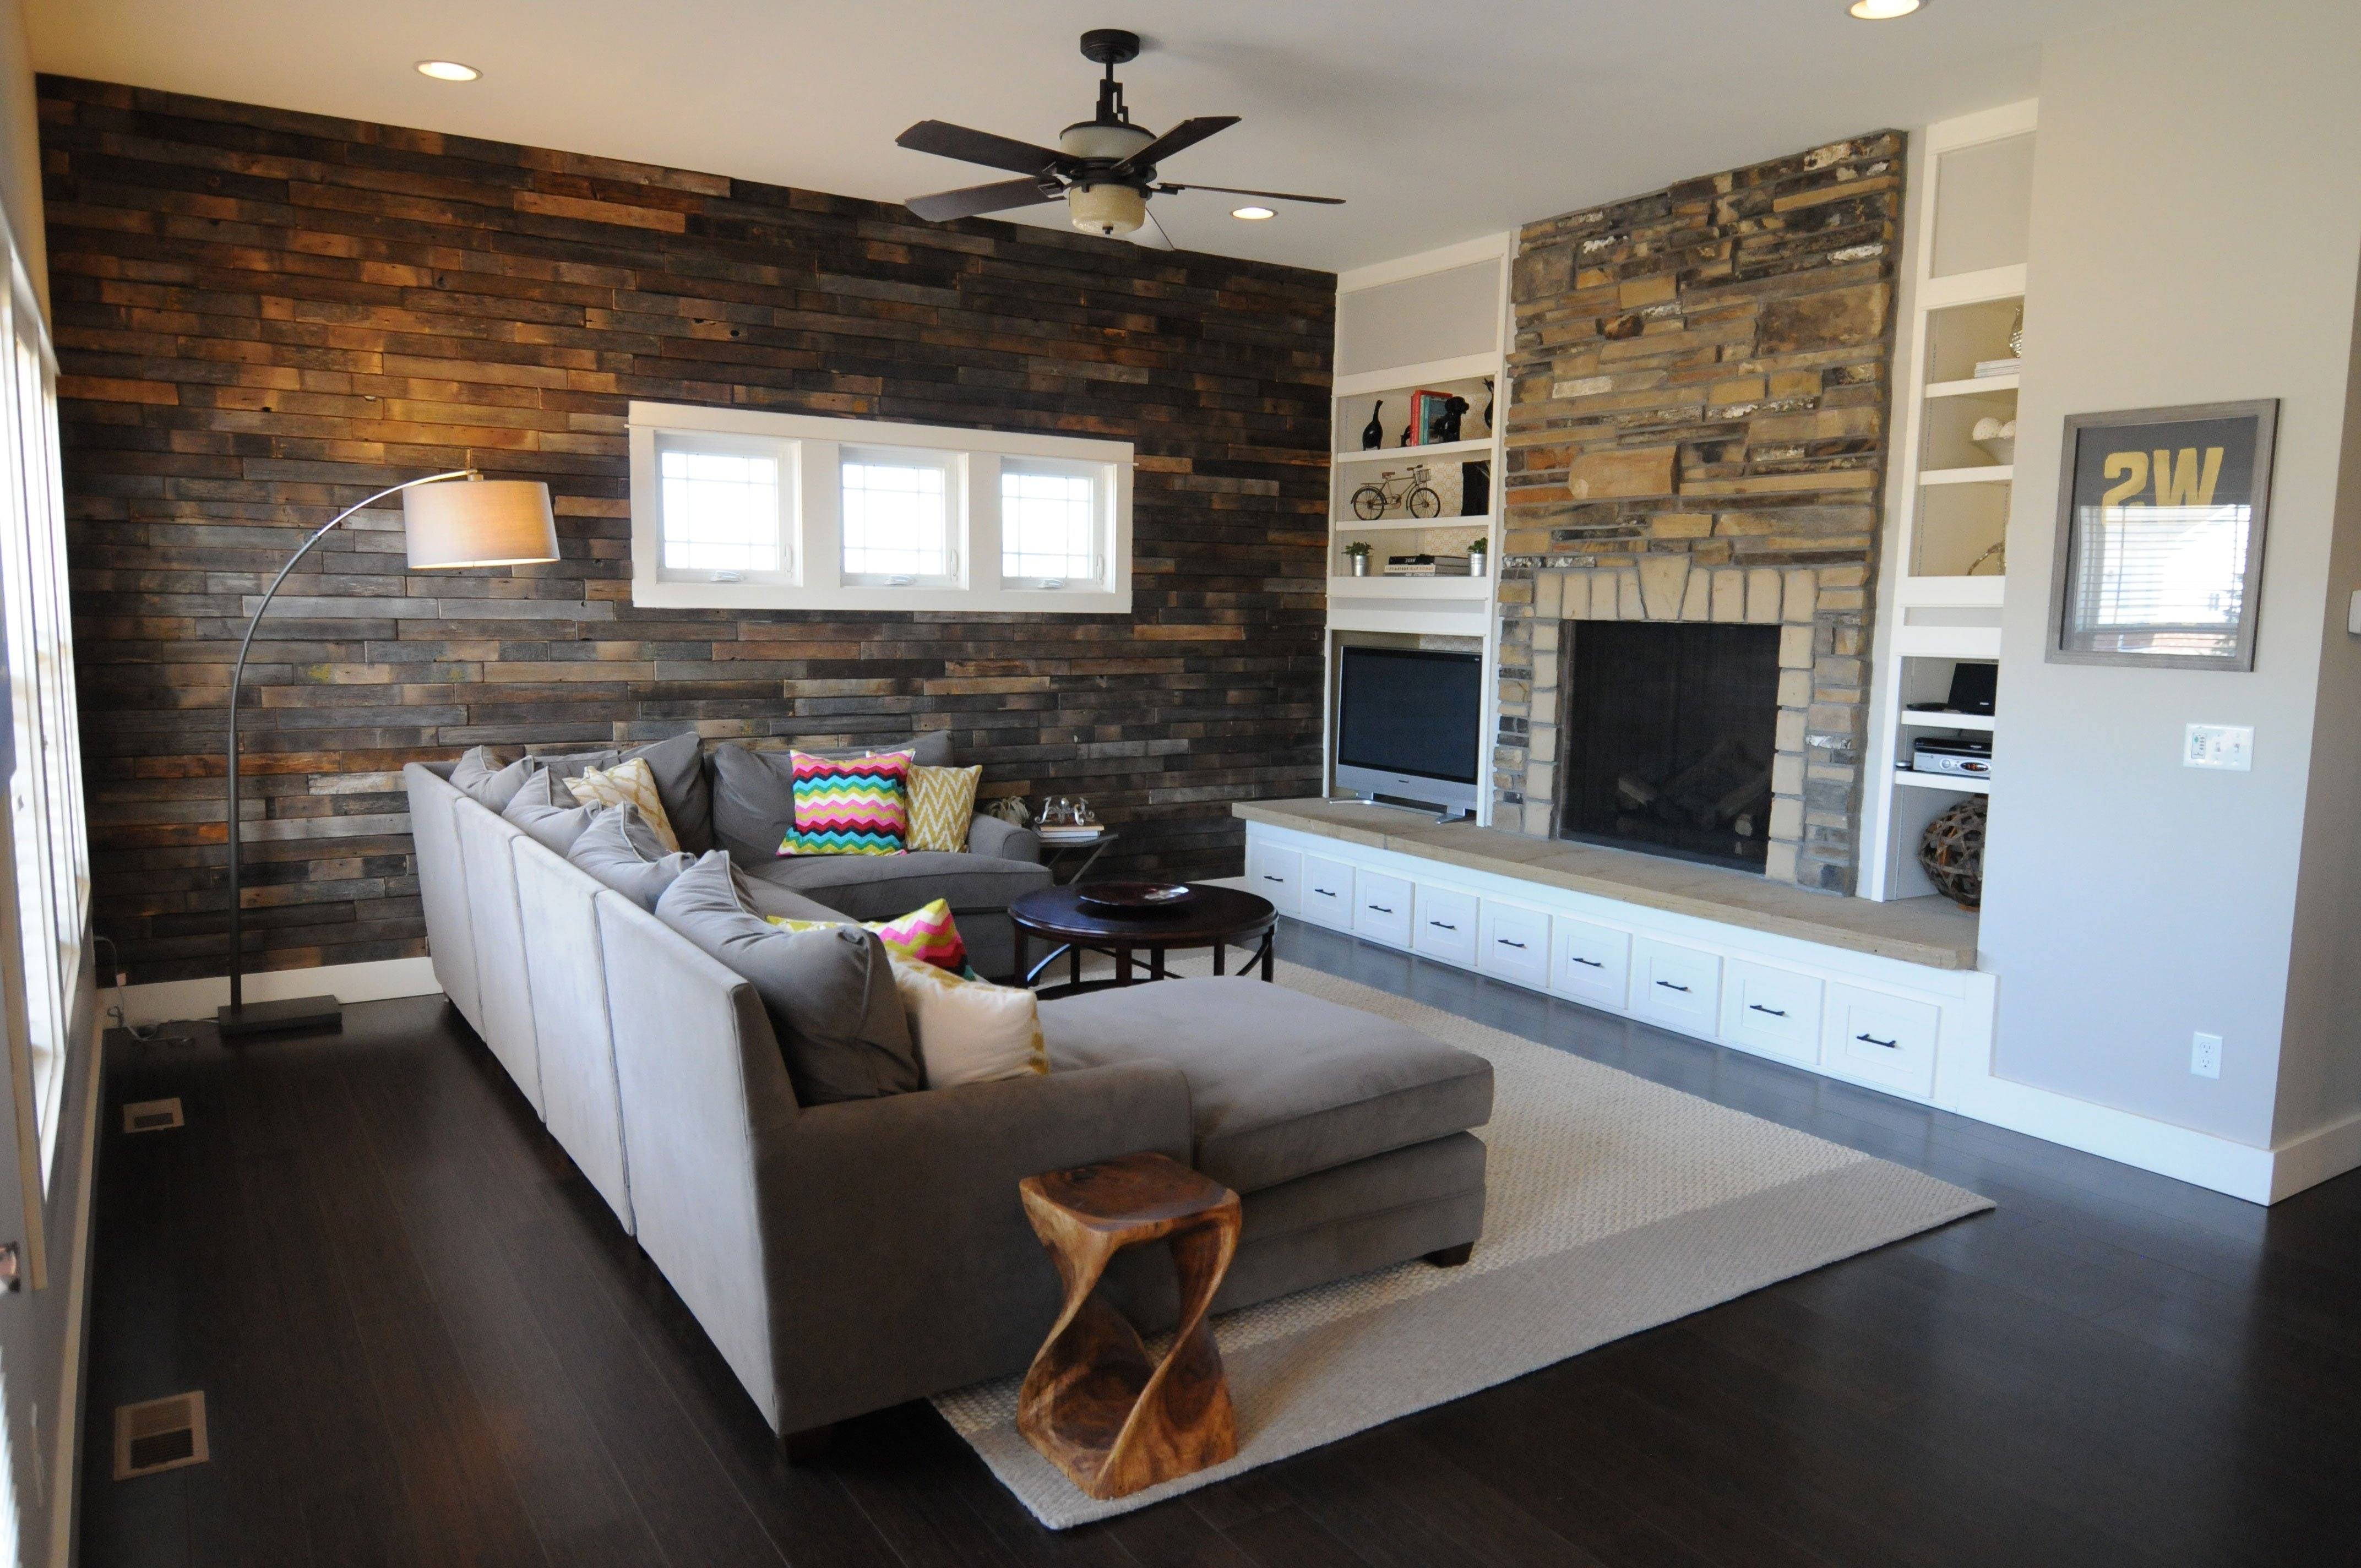 2017 Brick Wall Accents Throughout Accent Wall With Brown Furniture Showing Dark Brown Brick Wall And (View 10 of 15)